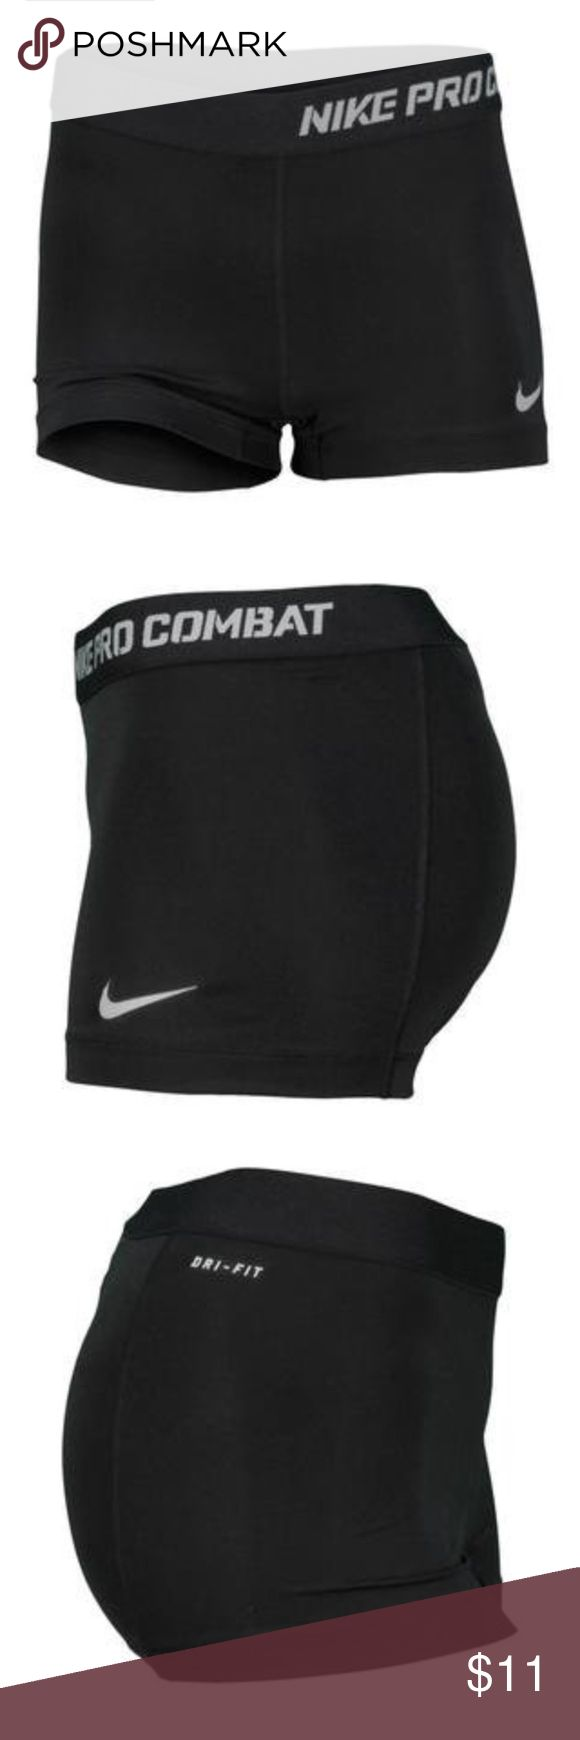 Nike Pro Combat compression shorts Size small, excellent used condition! Always washed gentle cycle and hang-dried, but due to very stretchy nature of fabric, the logo has begun to crack (see picture). Nike Shorts